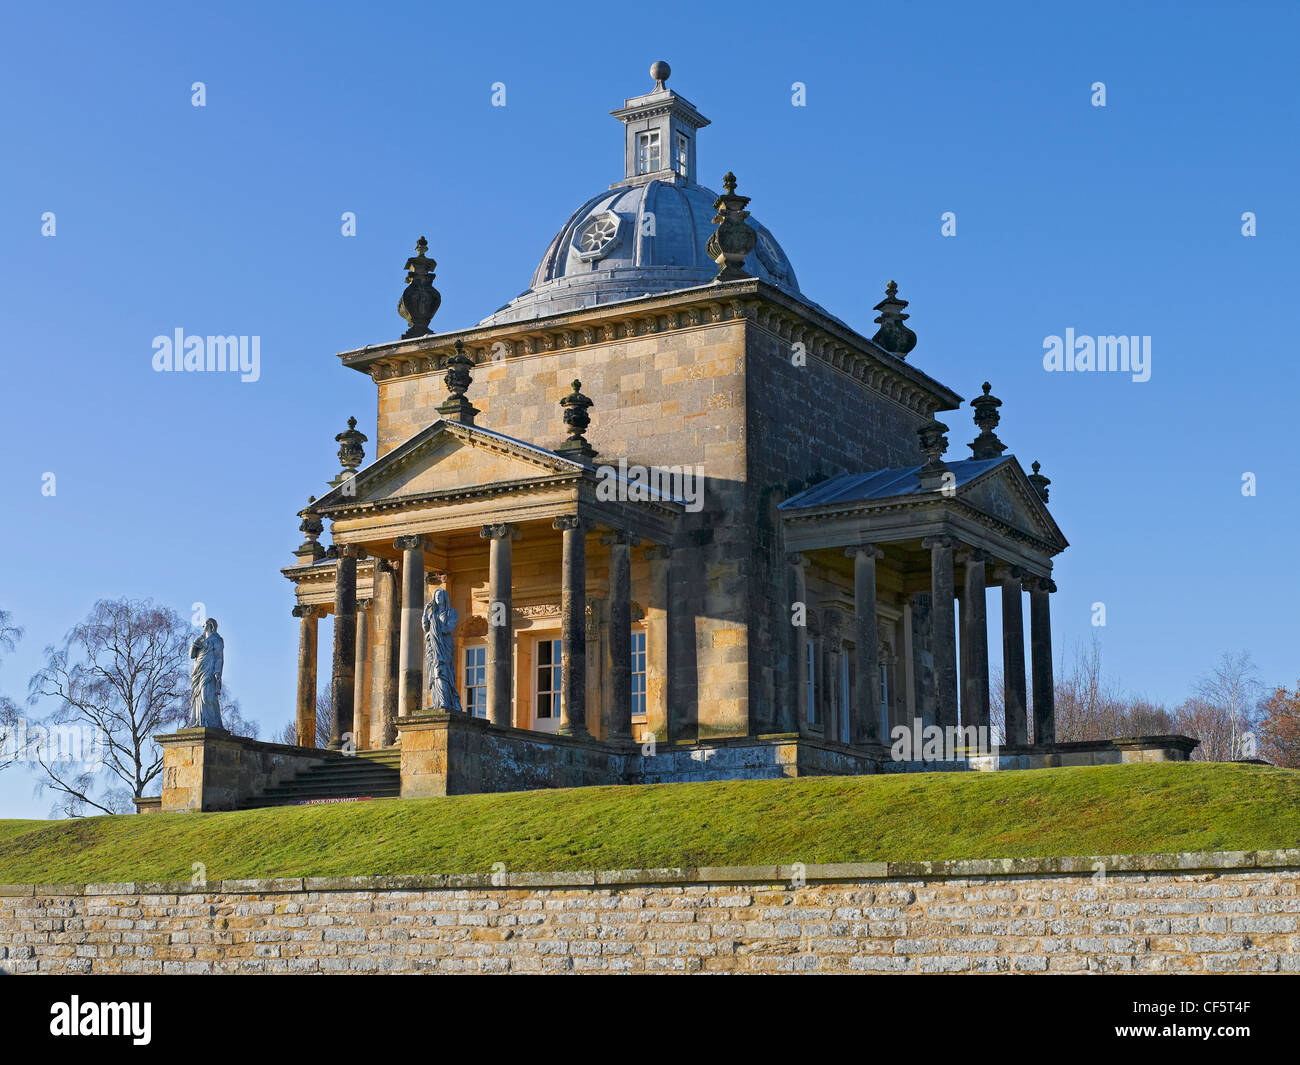 The Temple of the Four Winds, designed by Sir John Vanbrugh, in the gardens of Castle Howard. - Stock Image